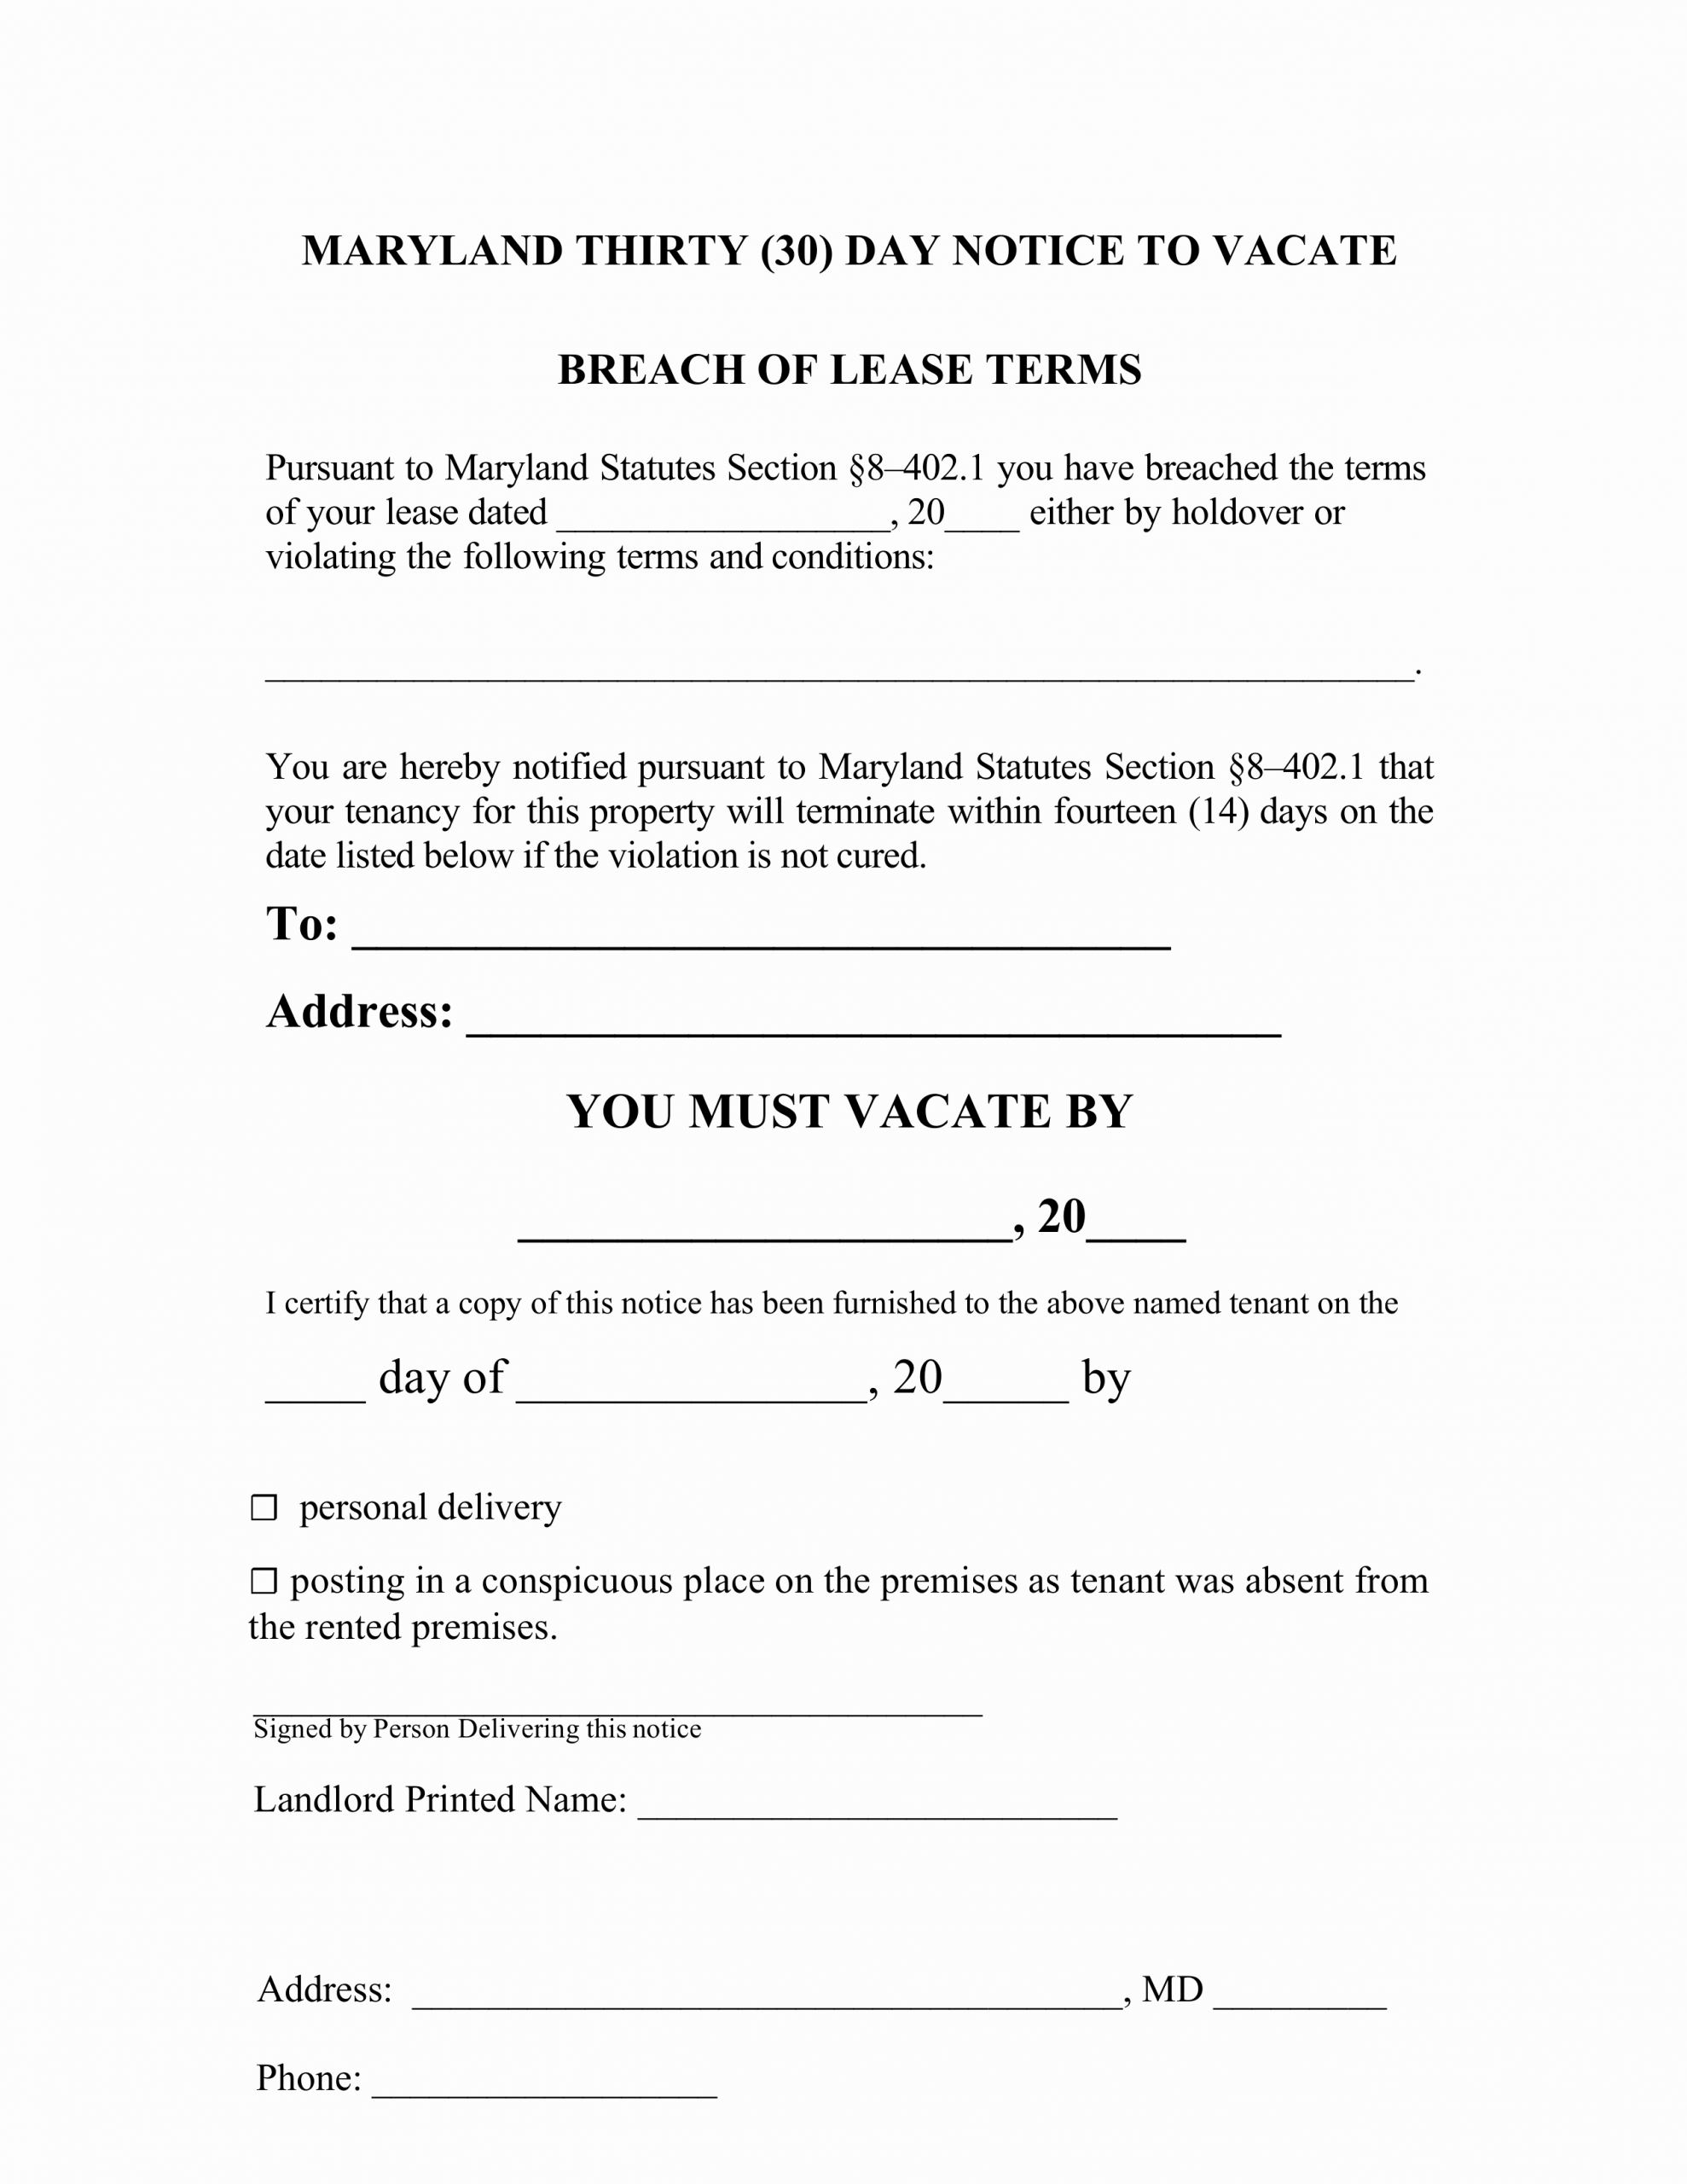 Eviction Notice Template Alabama Elegant Maryland 30 Day Notice to Quit form